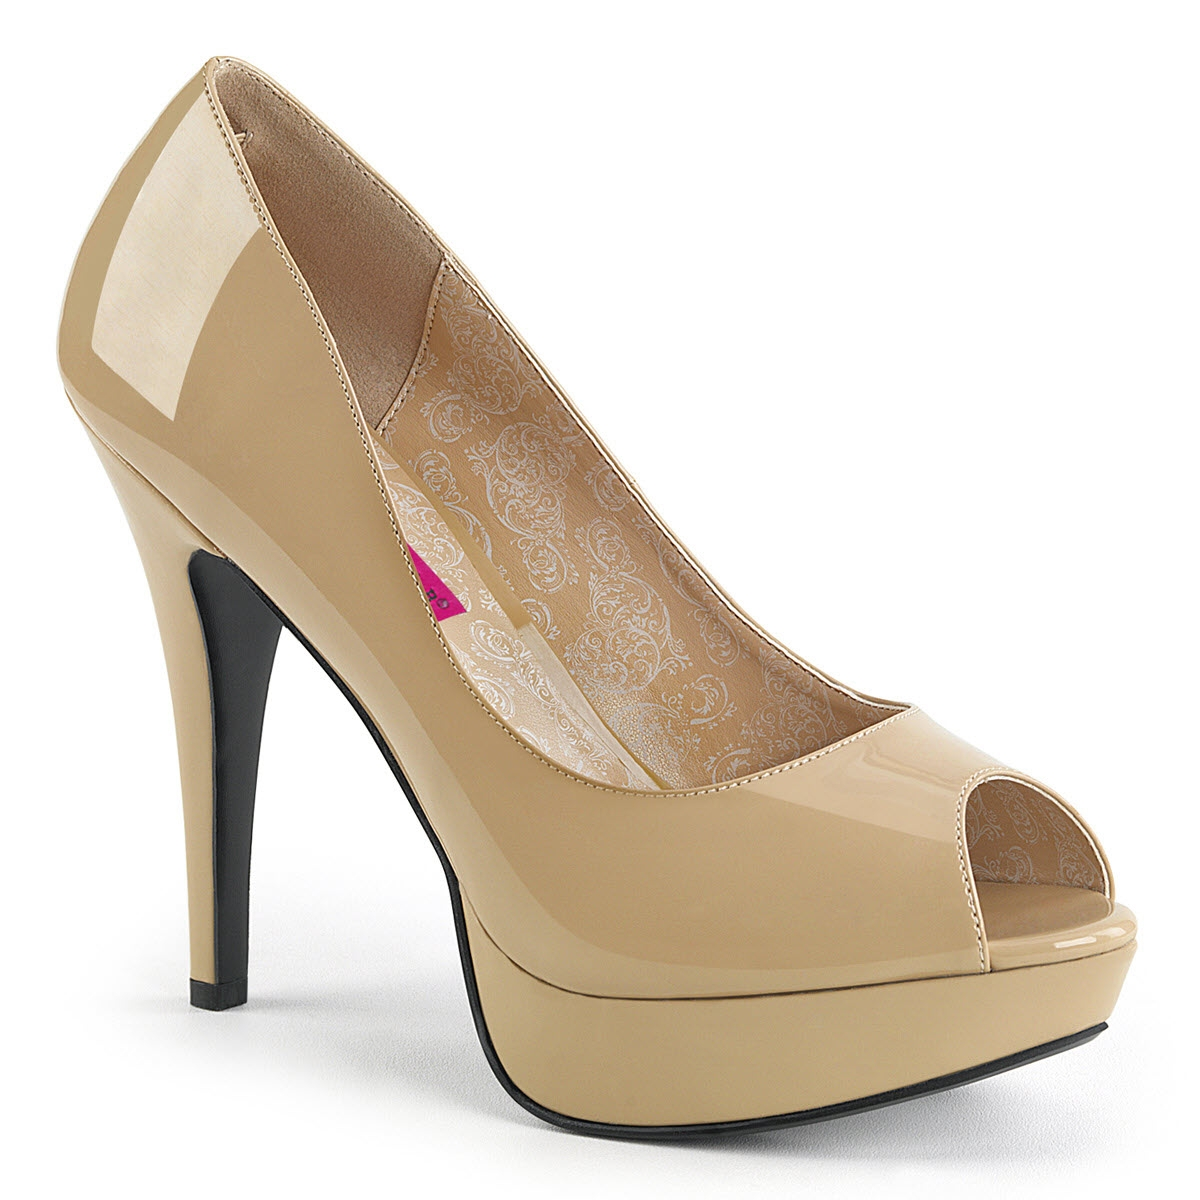 Image of Peep-Toe Pumps, CHLOE-01, Lack, Beige-10